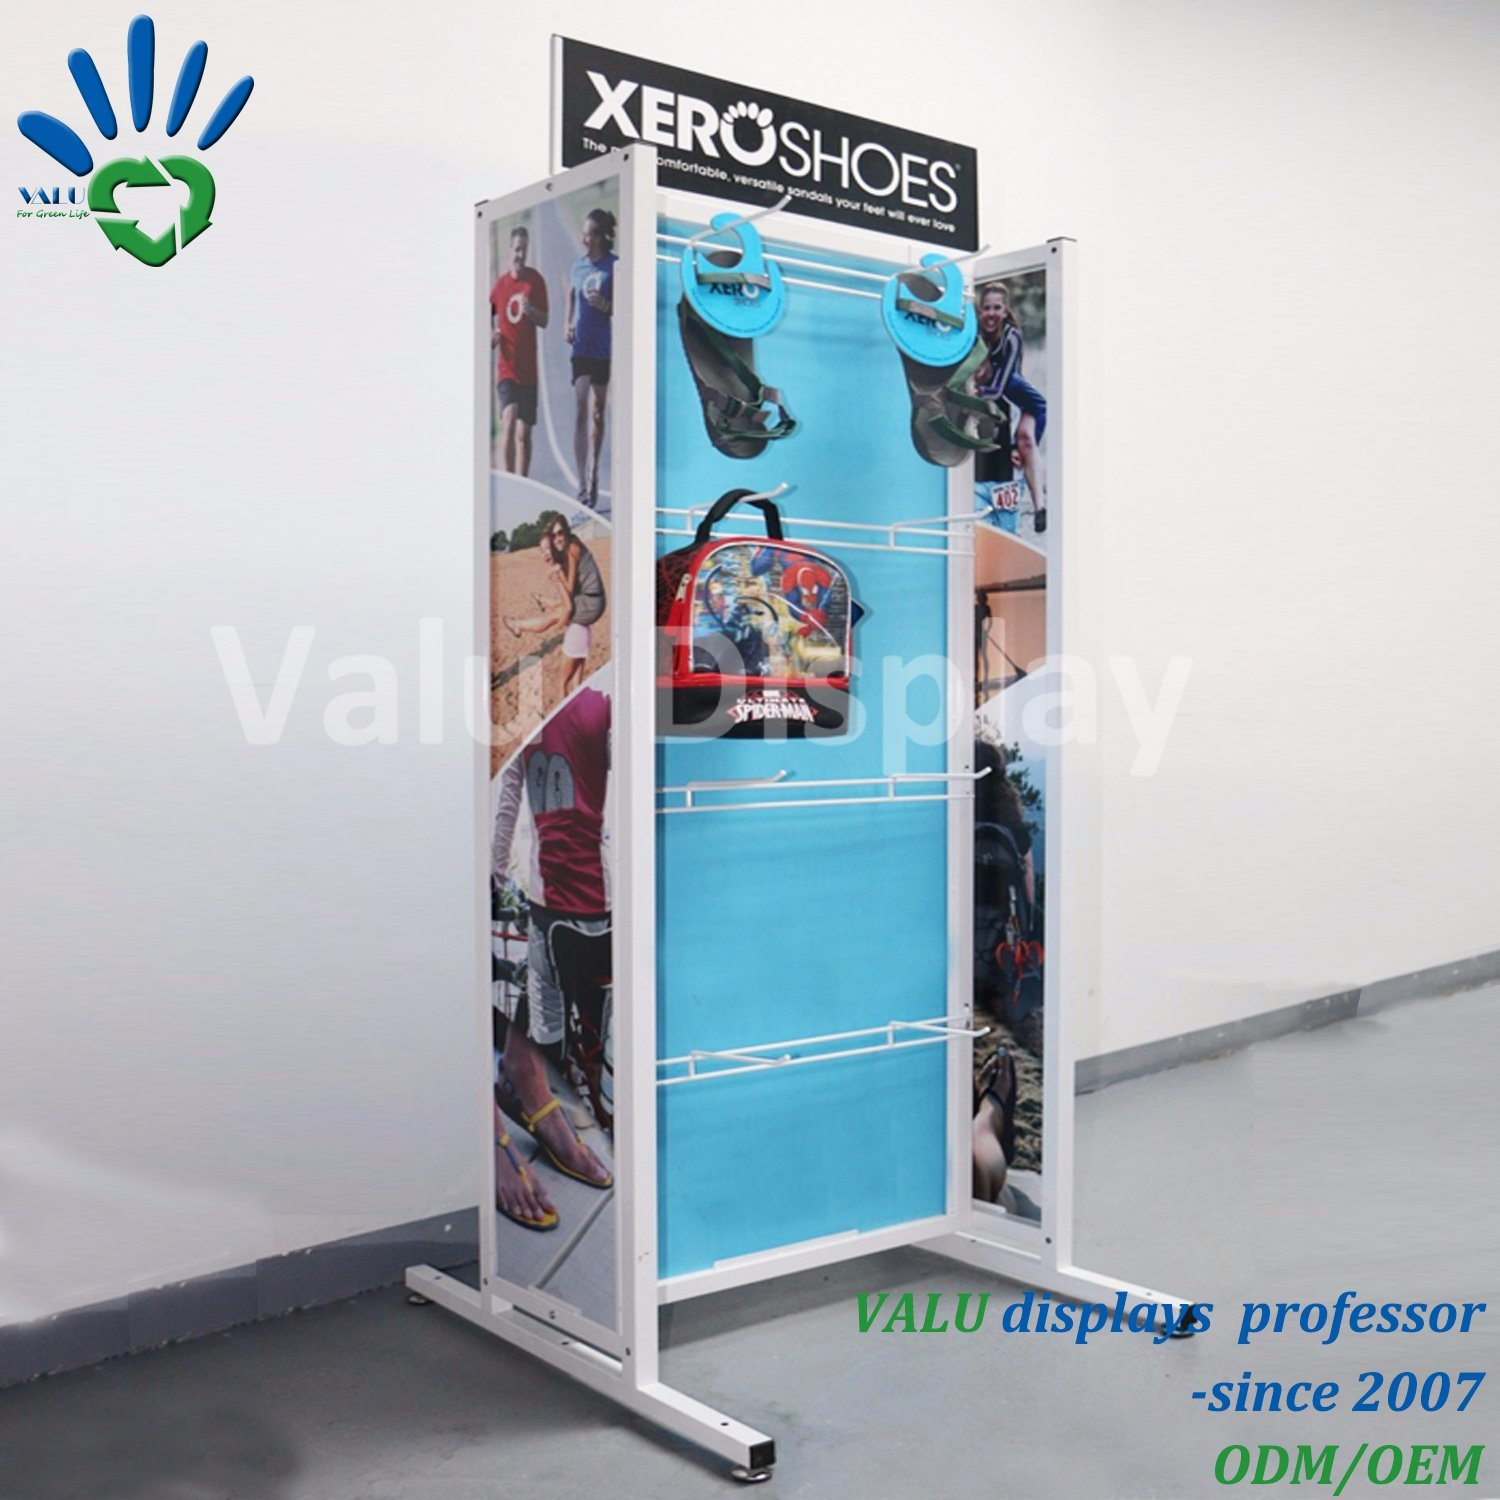 Exhibition Stand Shoes : V a presents extreme footwear in shoes exhibition